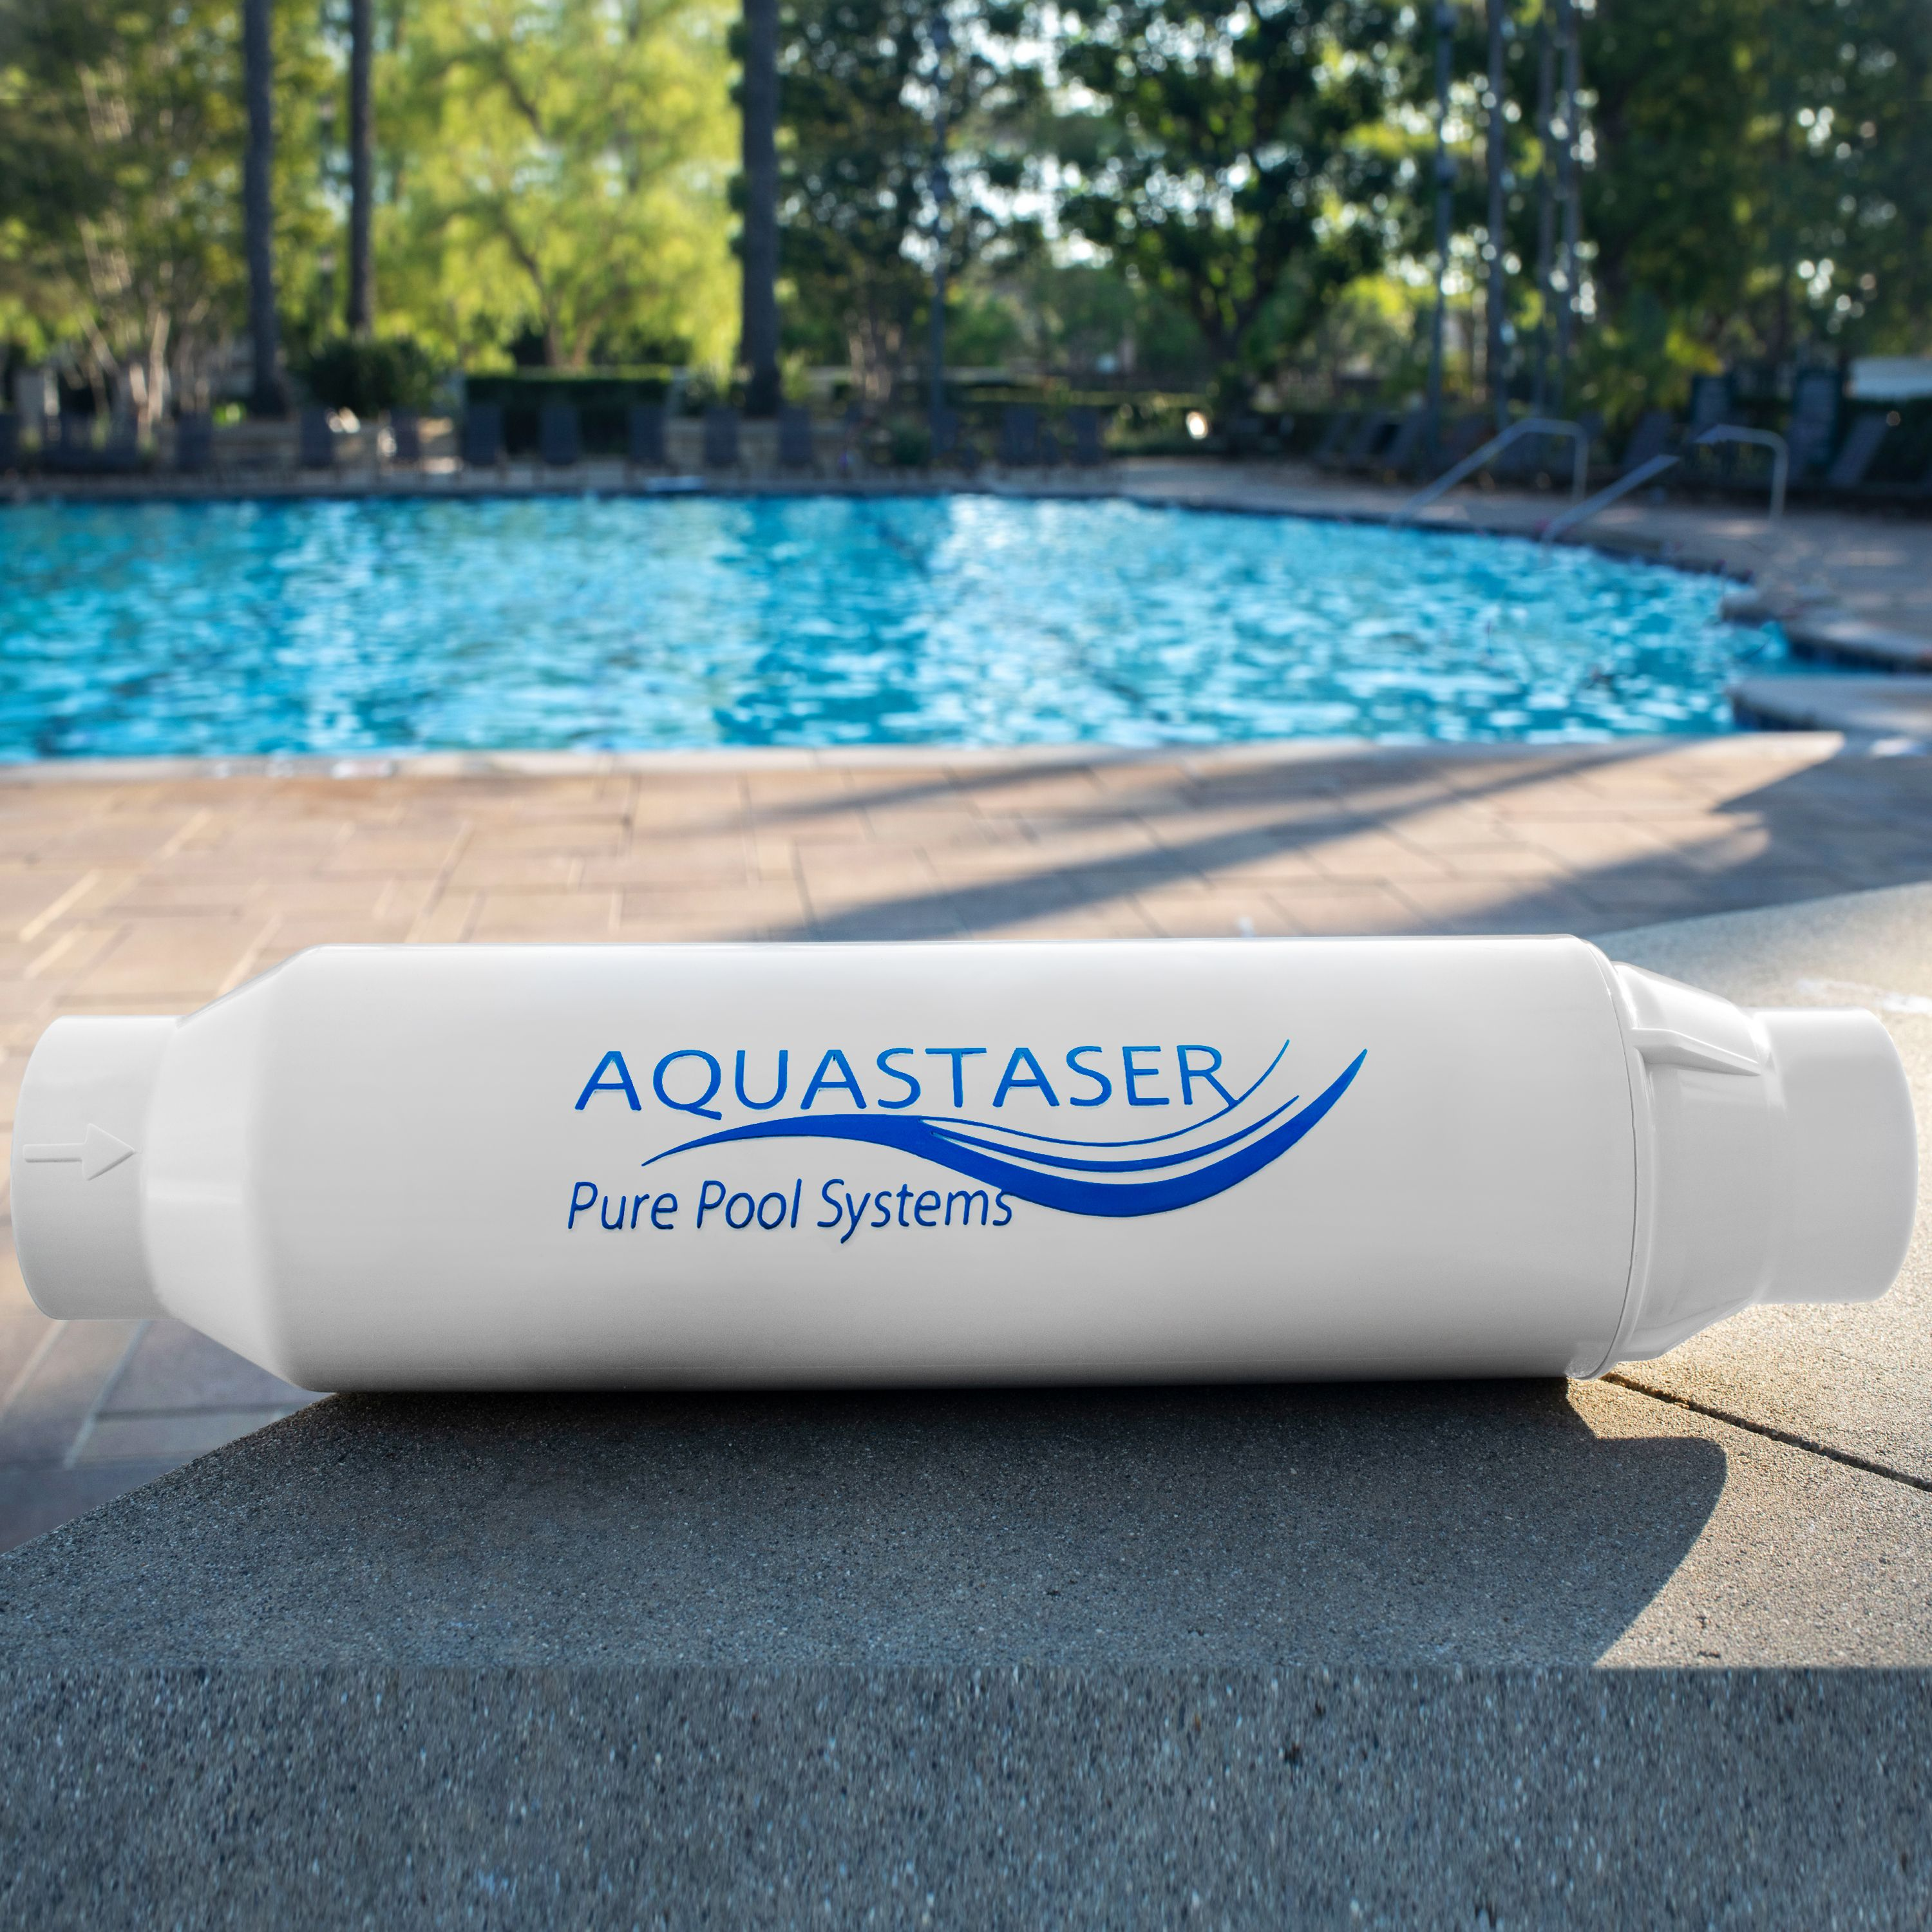 The Aquastaser water cleaning product